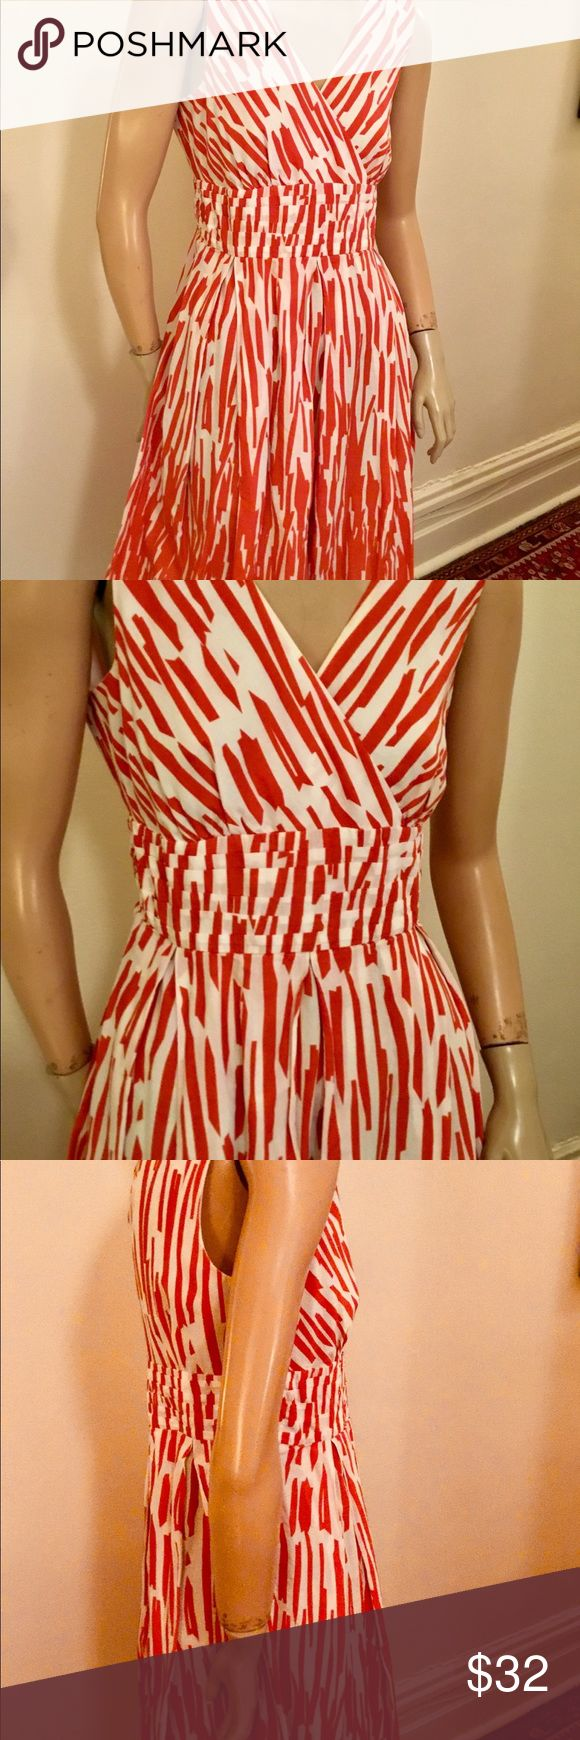 Red and white Summer day dress This is a comfortable poly blend day dress for warm weather that is sleeveless with a crossover v line neckline, empire bodice and a pleated cummerbund waist.  The skirt has inverted pleats and is knee length. It is size 8 or check the measurements below. Vintage Dresses Midi